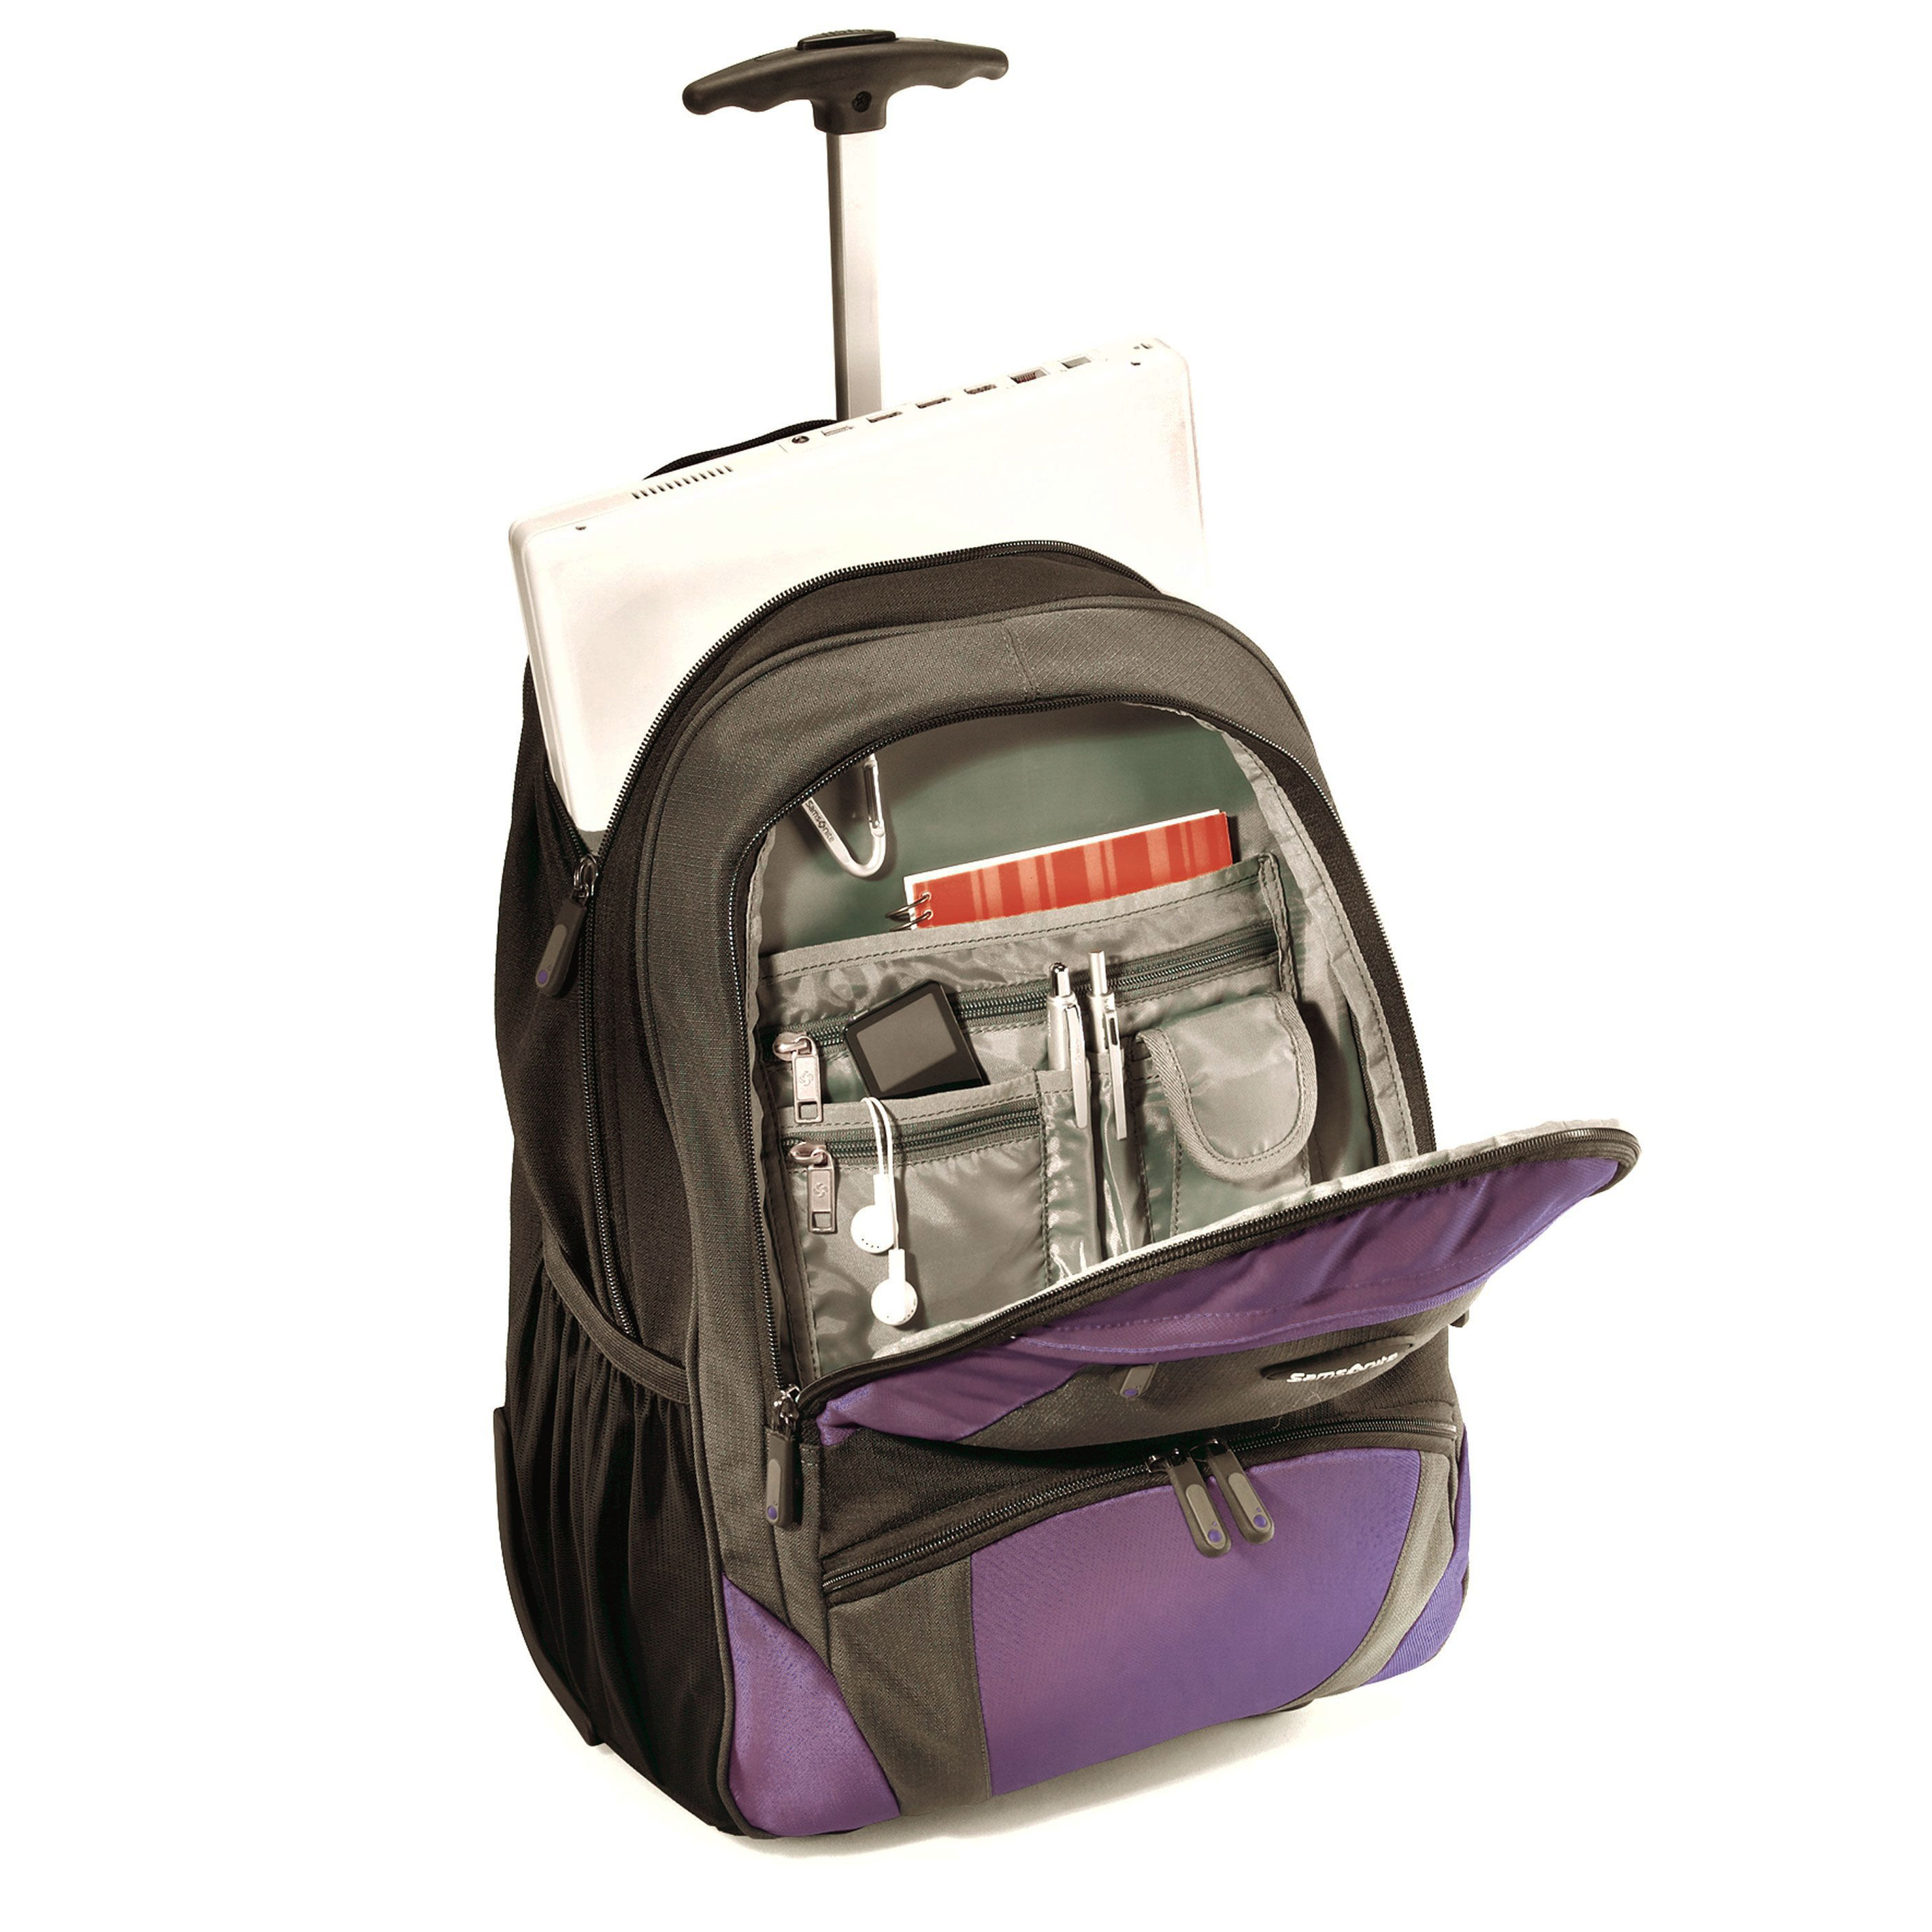 samsonite wheeled computer backpack in the color lavender and black